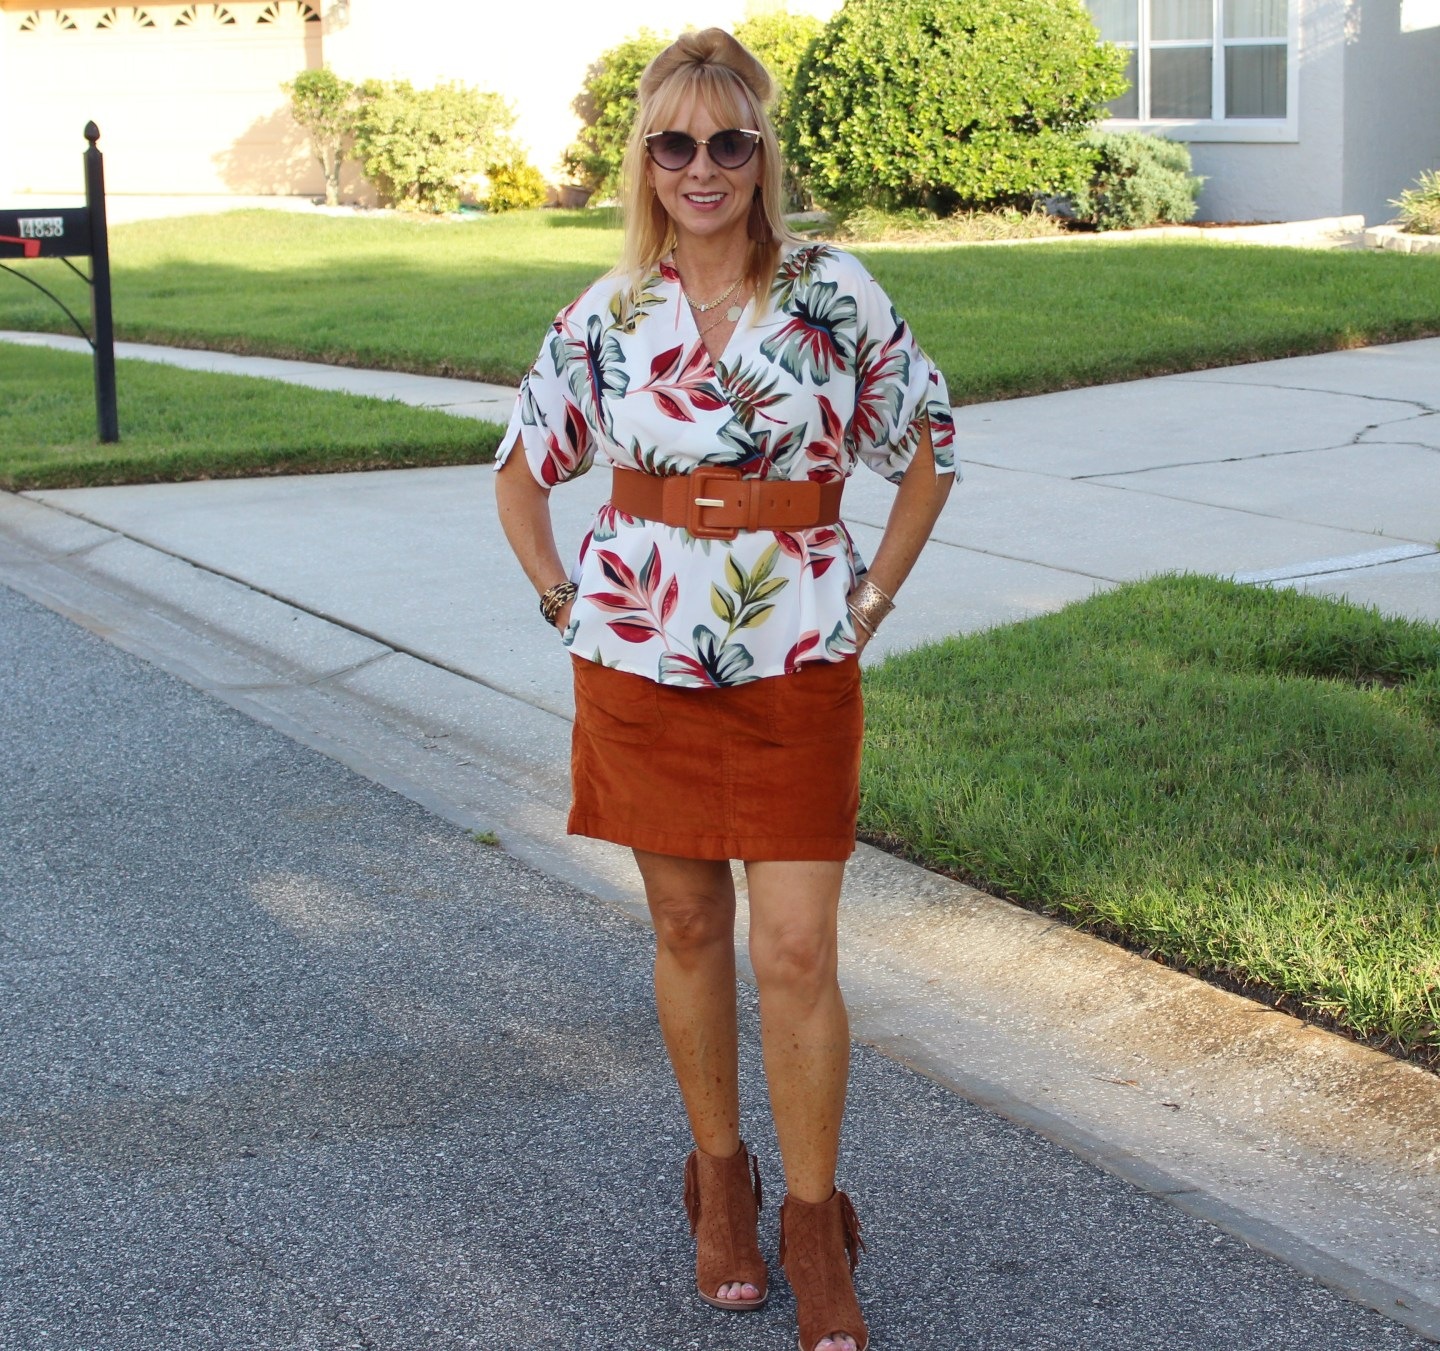 Corduroy Skirt + Floral Top